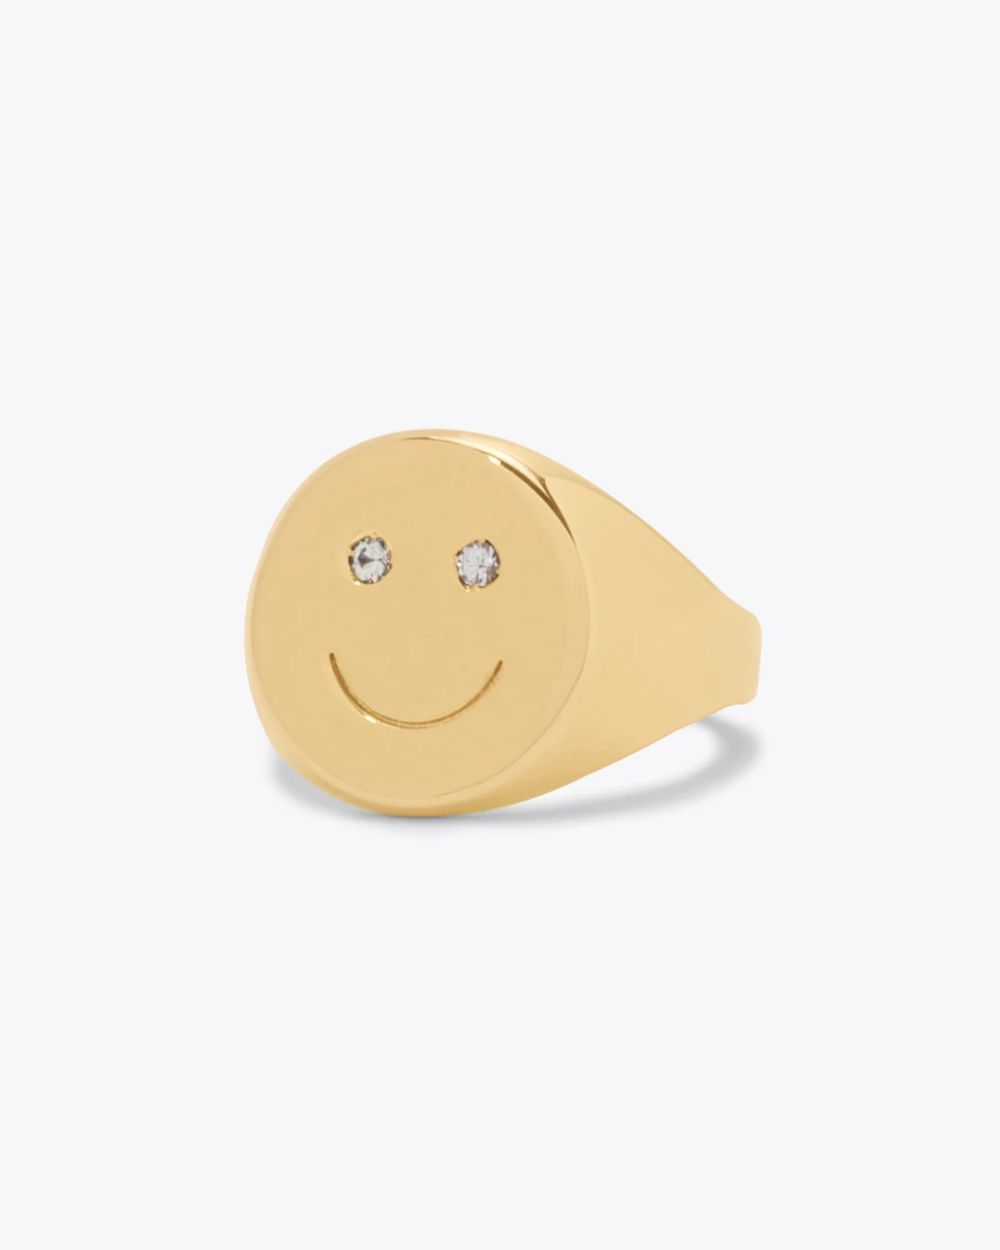 Happy Signet Ring by One Six Five - ring - ban.do